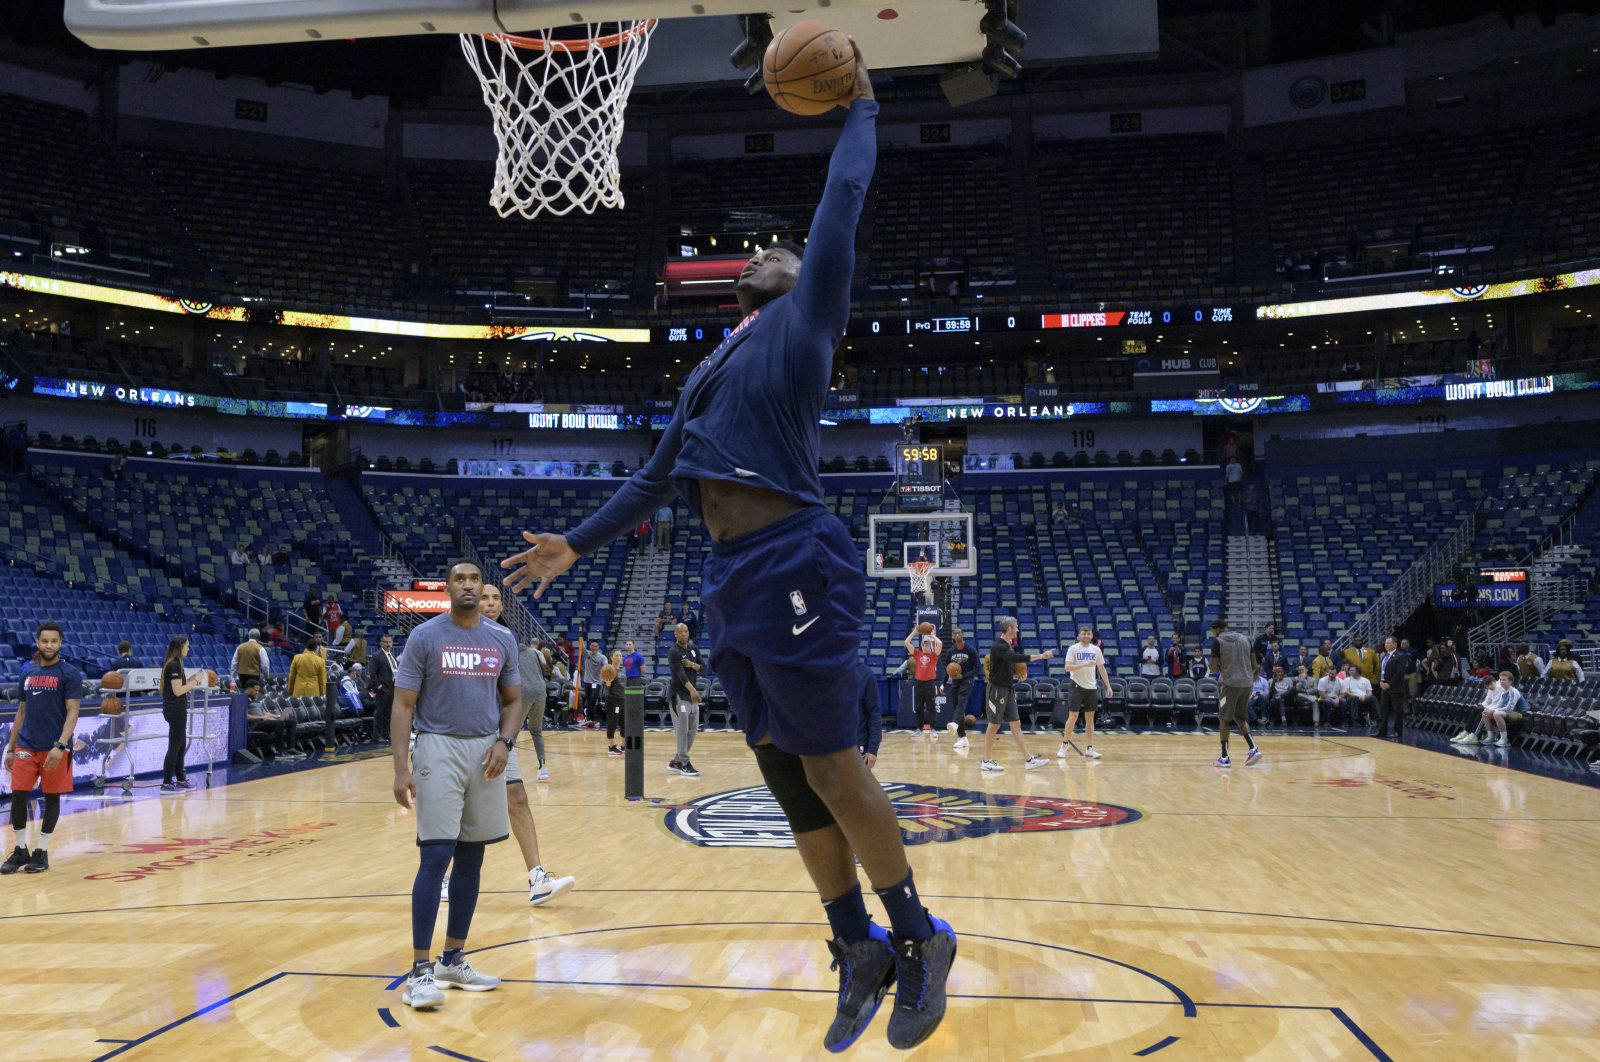 New Orleans Pelicans forward Zion Williamson practices before an NBA basketball game in New Orleans, U.S., Jan. 18, 2020. (AP Photo)